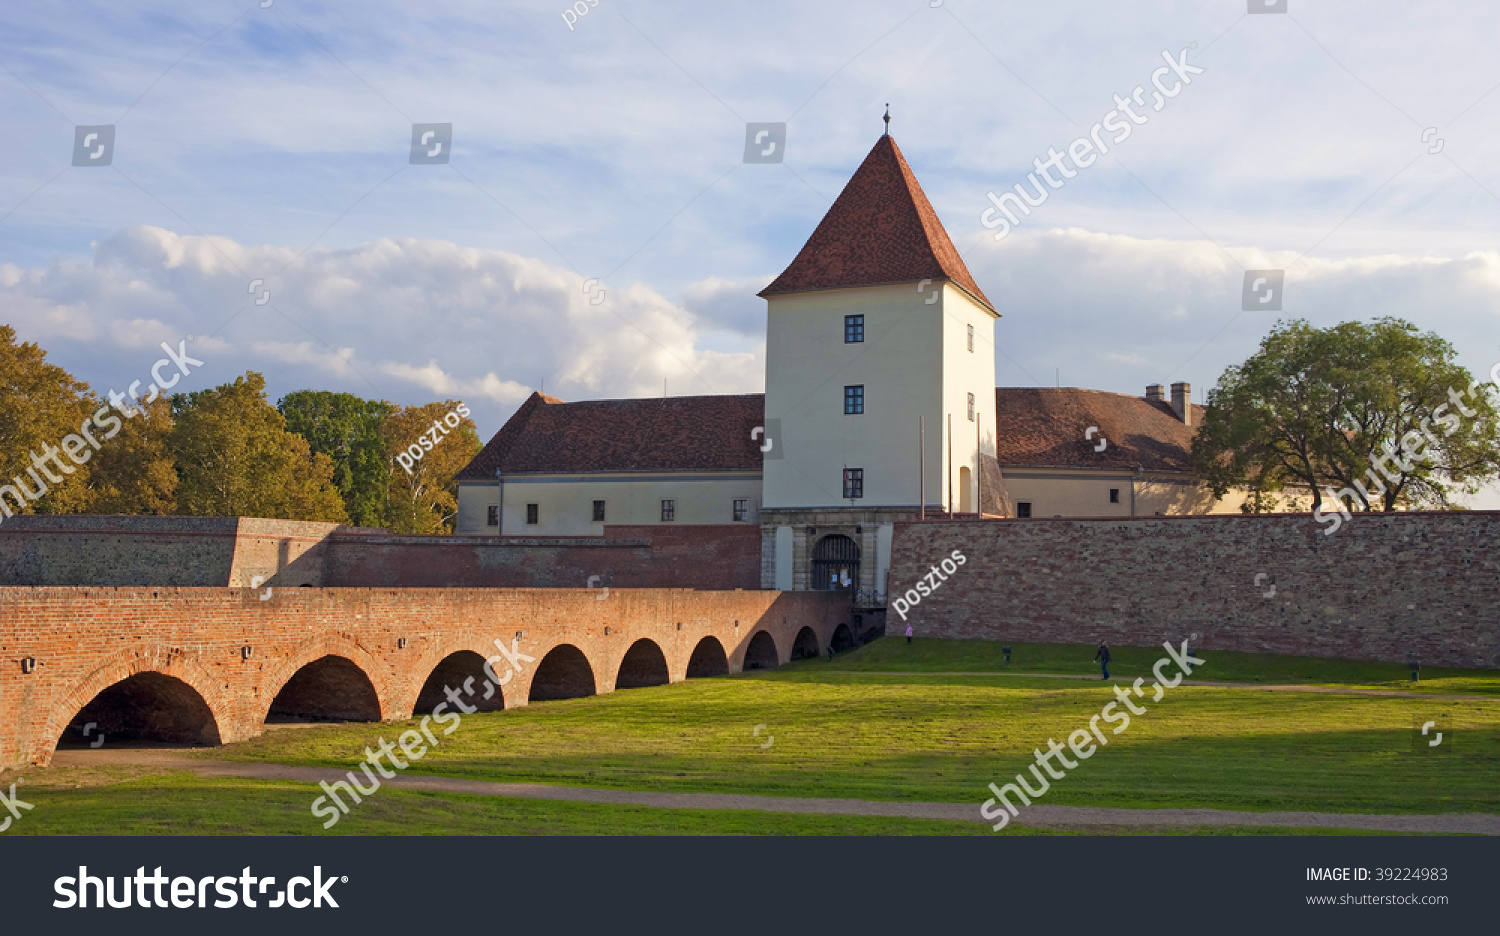 Sarvar Hungary  City new picture : Sarvar Castle In Hungary Stock Photo 39224983 : Shutterstock